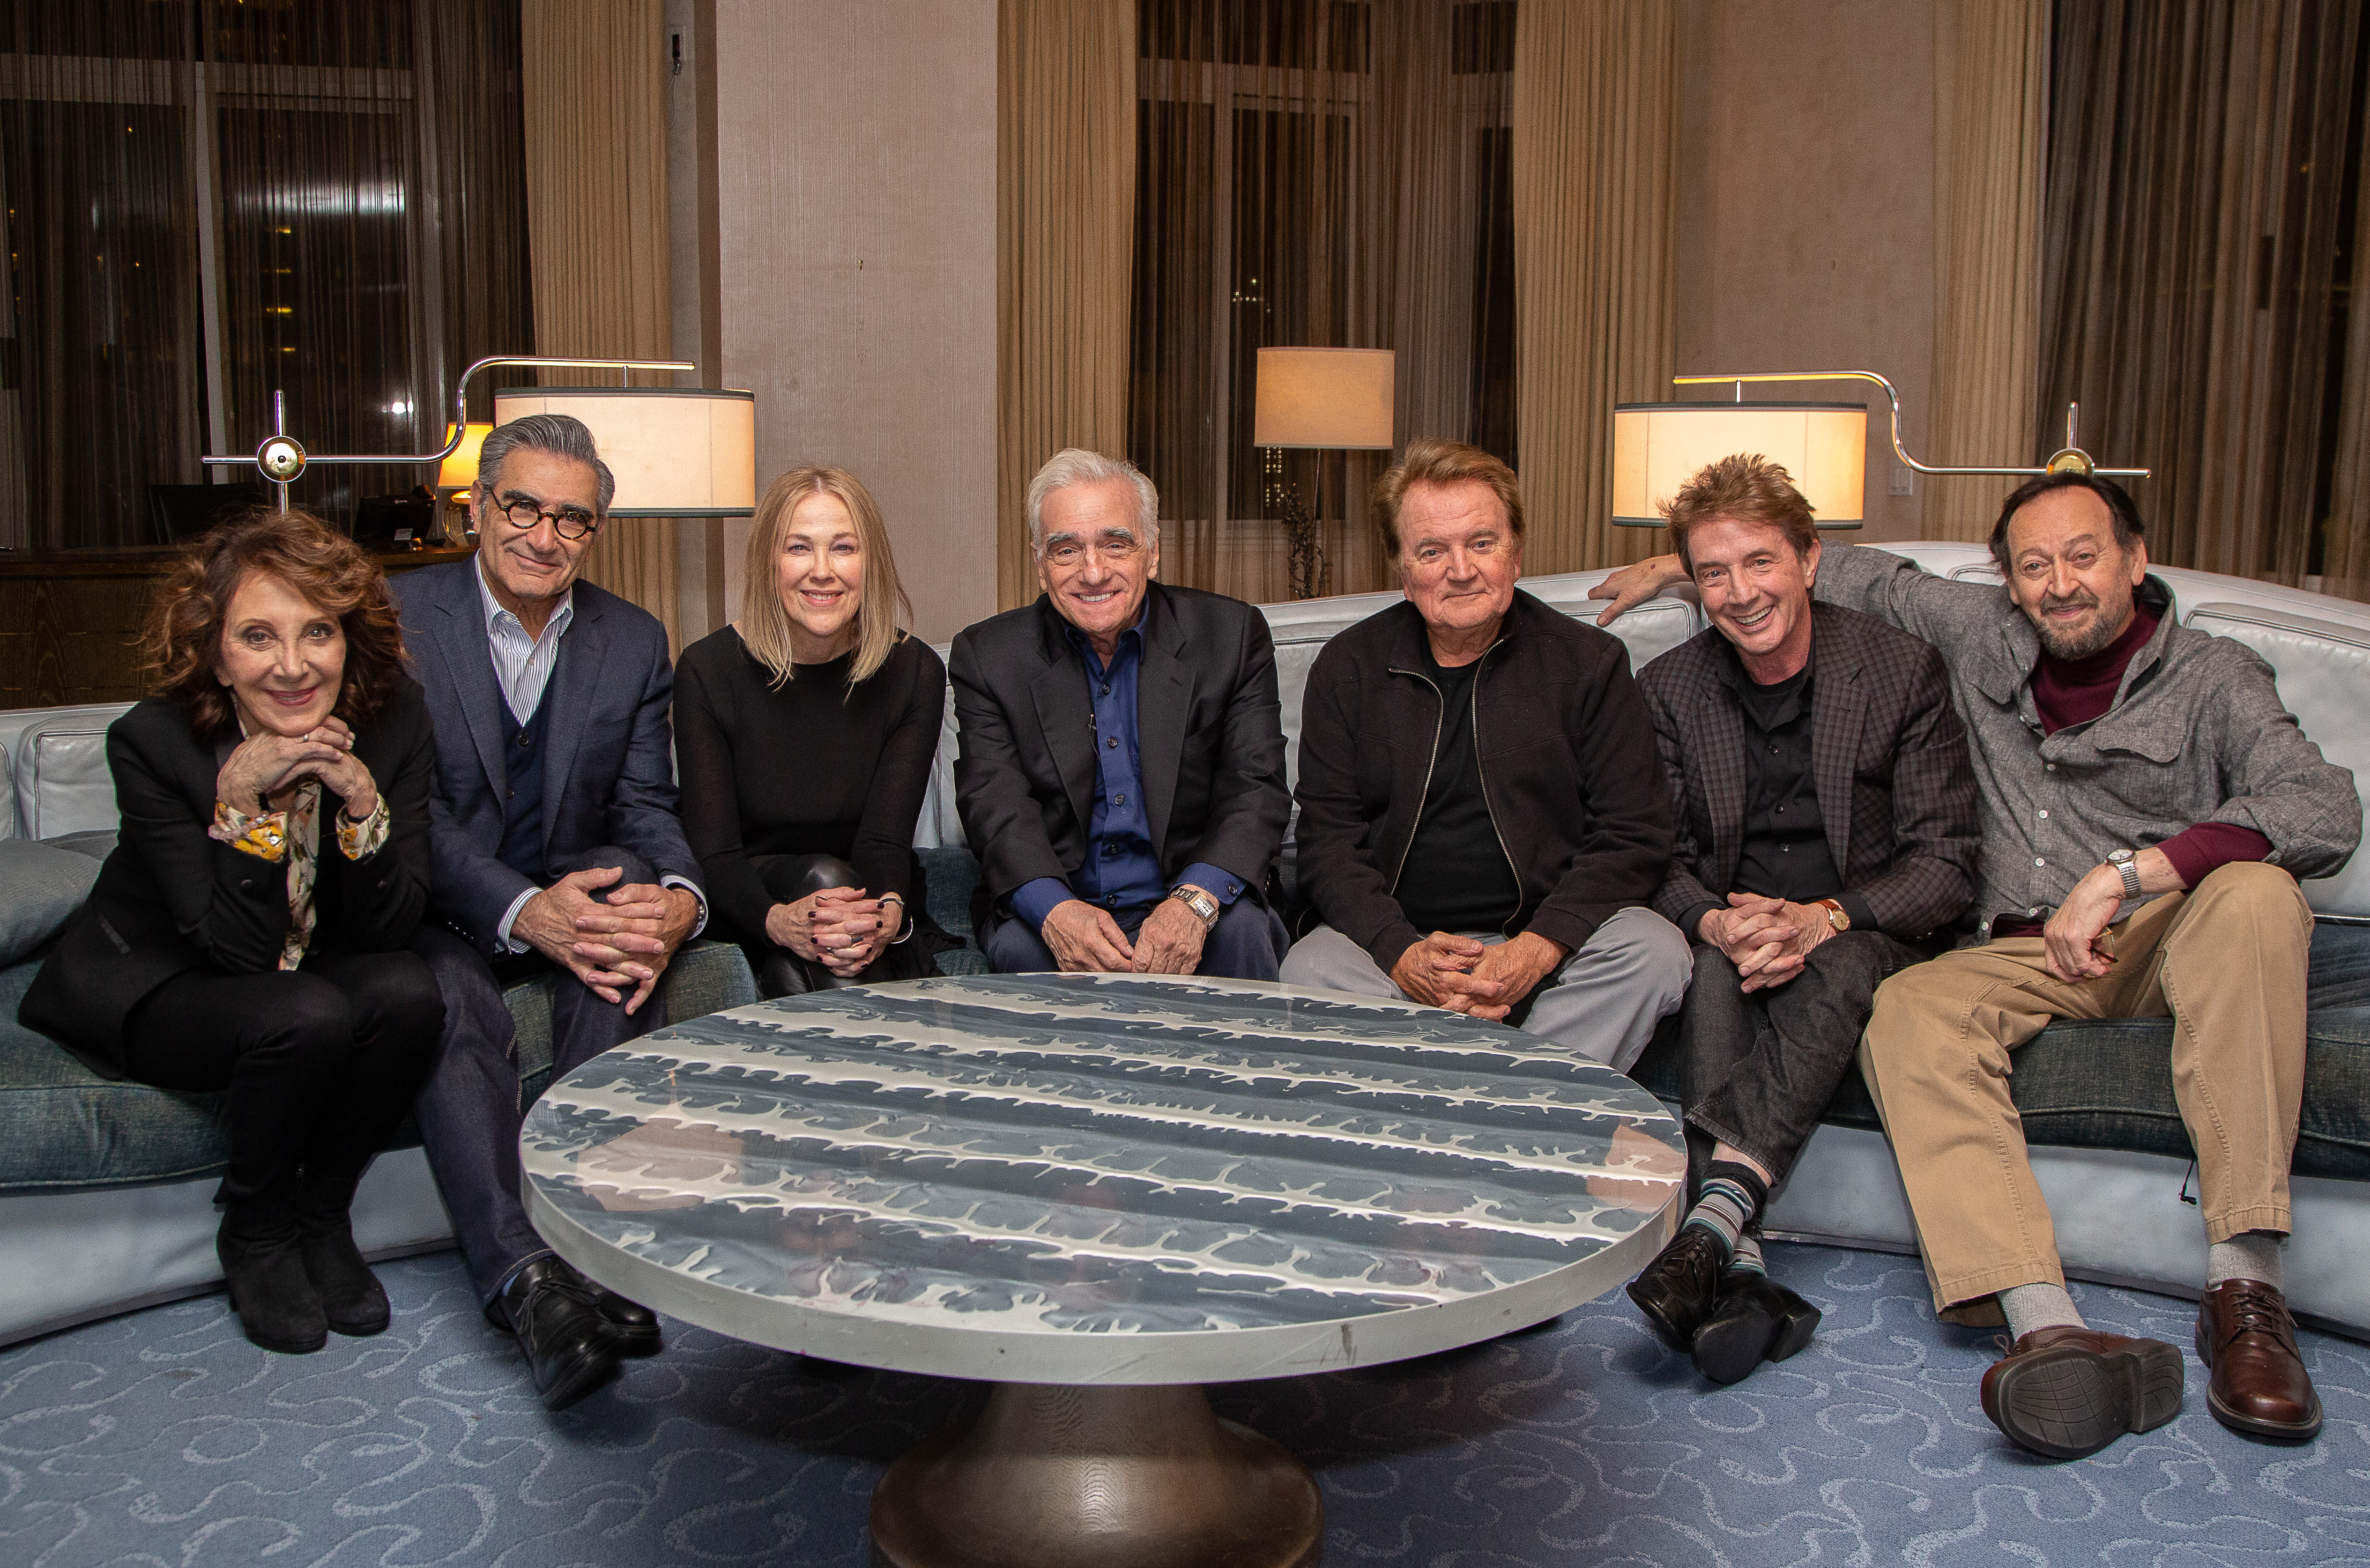 SCTV Reunion Doc for Netflix Will Be Directed by Martin Scorsese